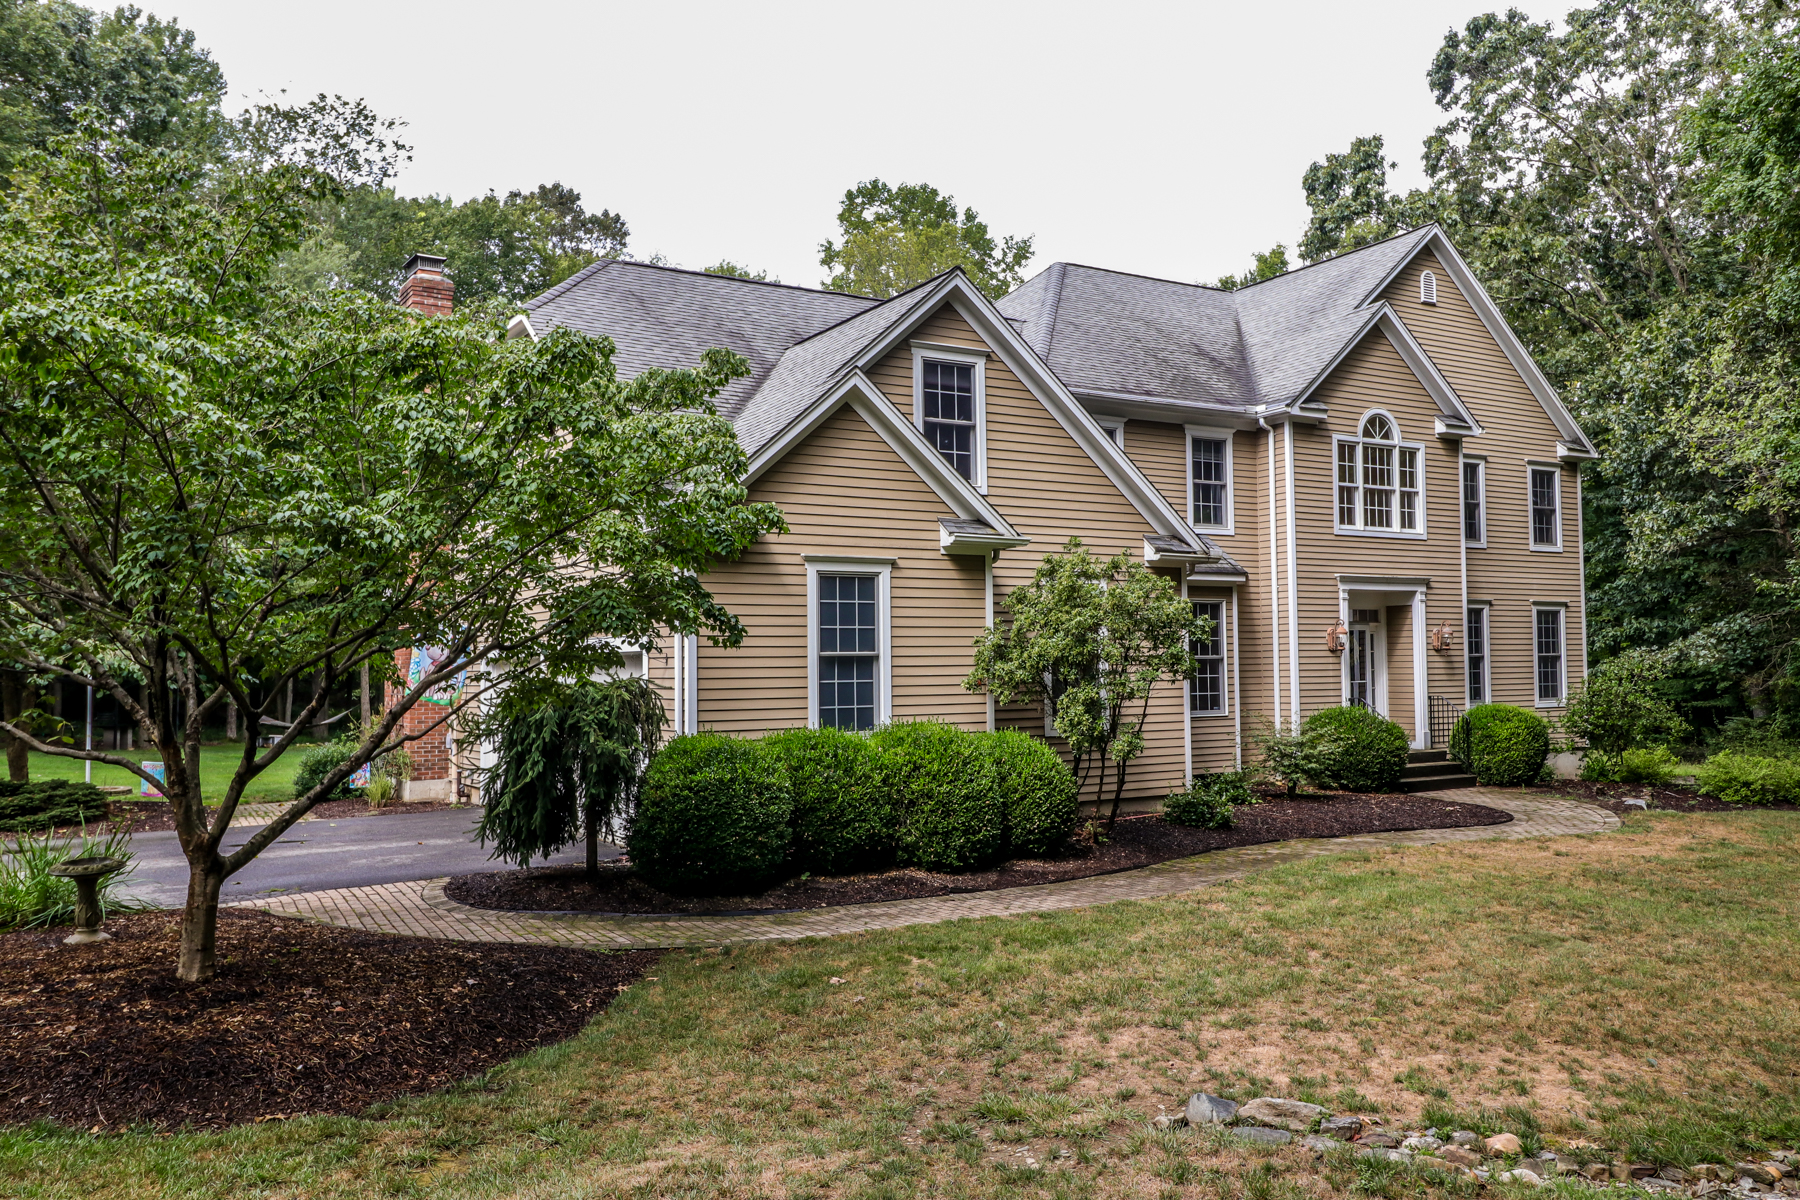 Single Family Homes for Sale at Gracious Elegance 35 Obtuse Rocks Road Brookfield, Connecticut 06804 United States